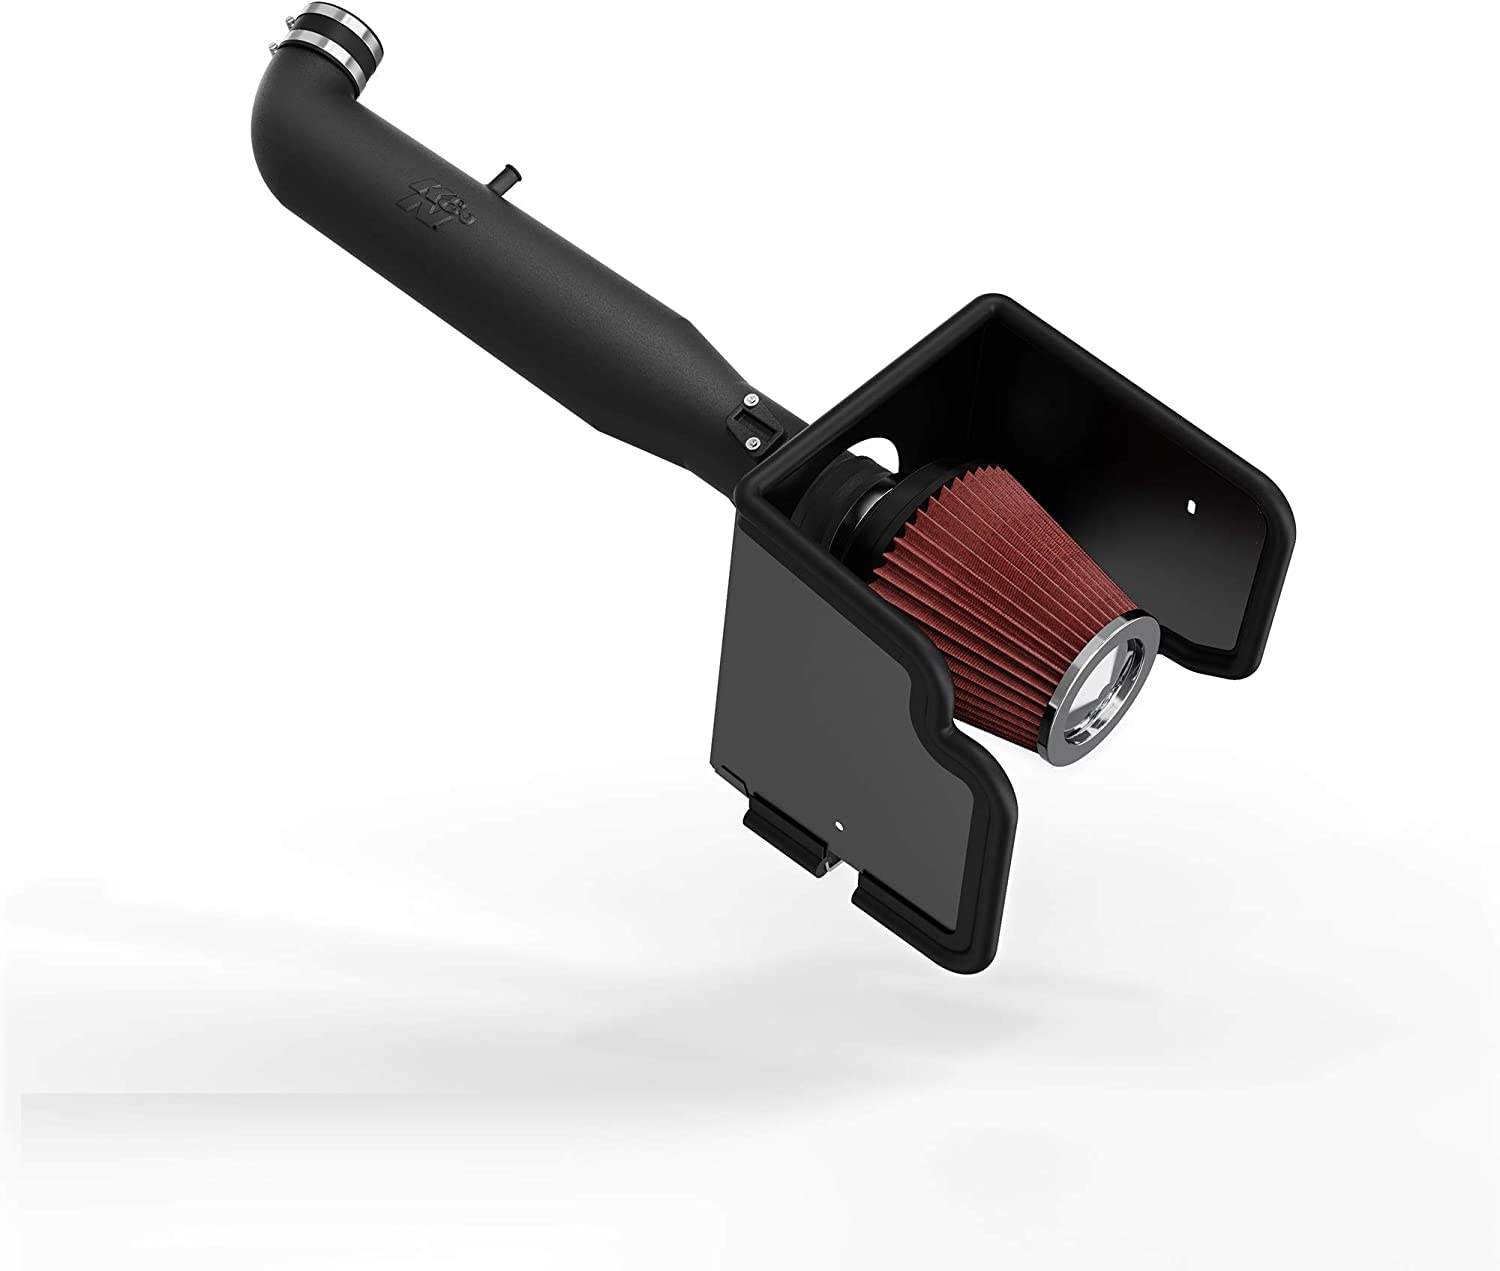 05-15 Nissan Frontier Cold Air Intake System with Heat Shield Kit Filter Combo RED Compatible For 05-12 Nissan Pathfinder 05-15 Nissan Xterra 4.0L V6